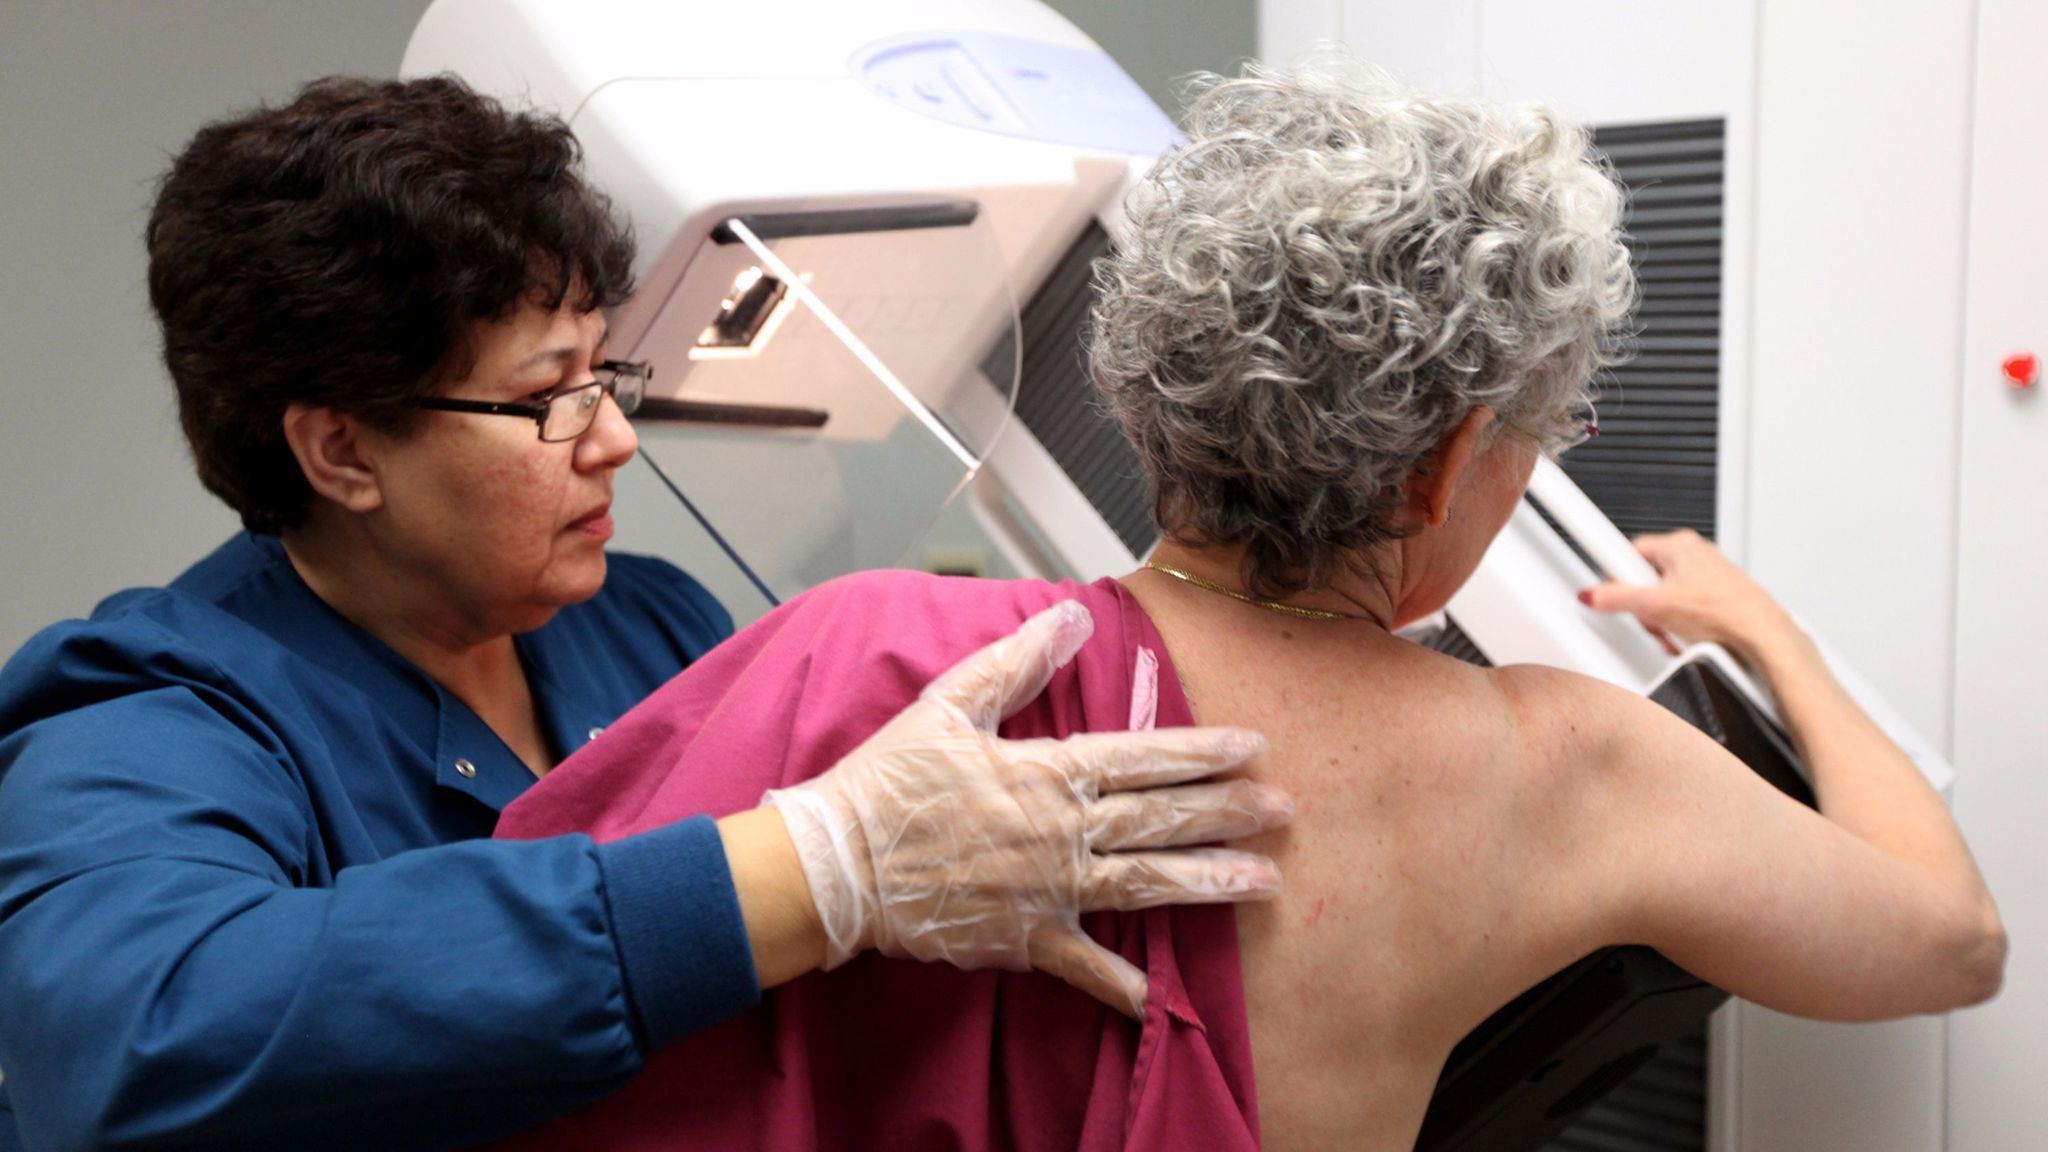 Women, especially those in their 40s, should discuss the benefits and limitations of screening mammograms before deciding whether to get the test, experts say.